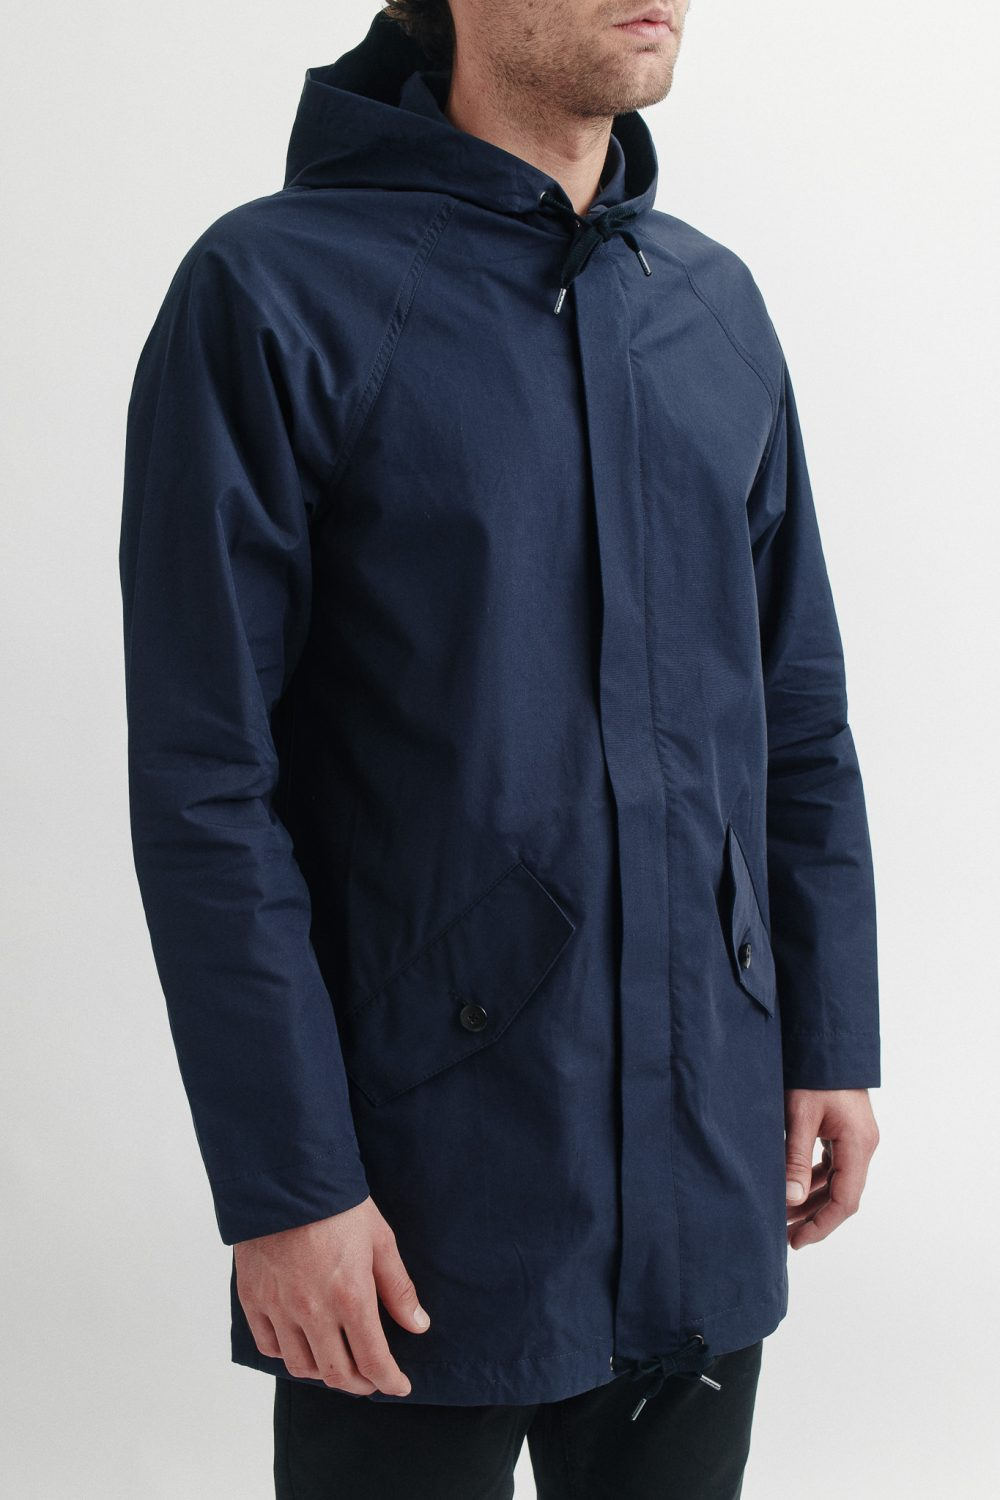 A-Kind-Of-Guise-Pernaments-Parka-Navy